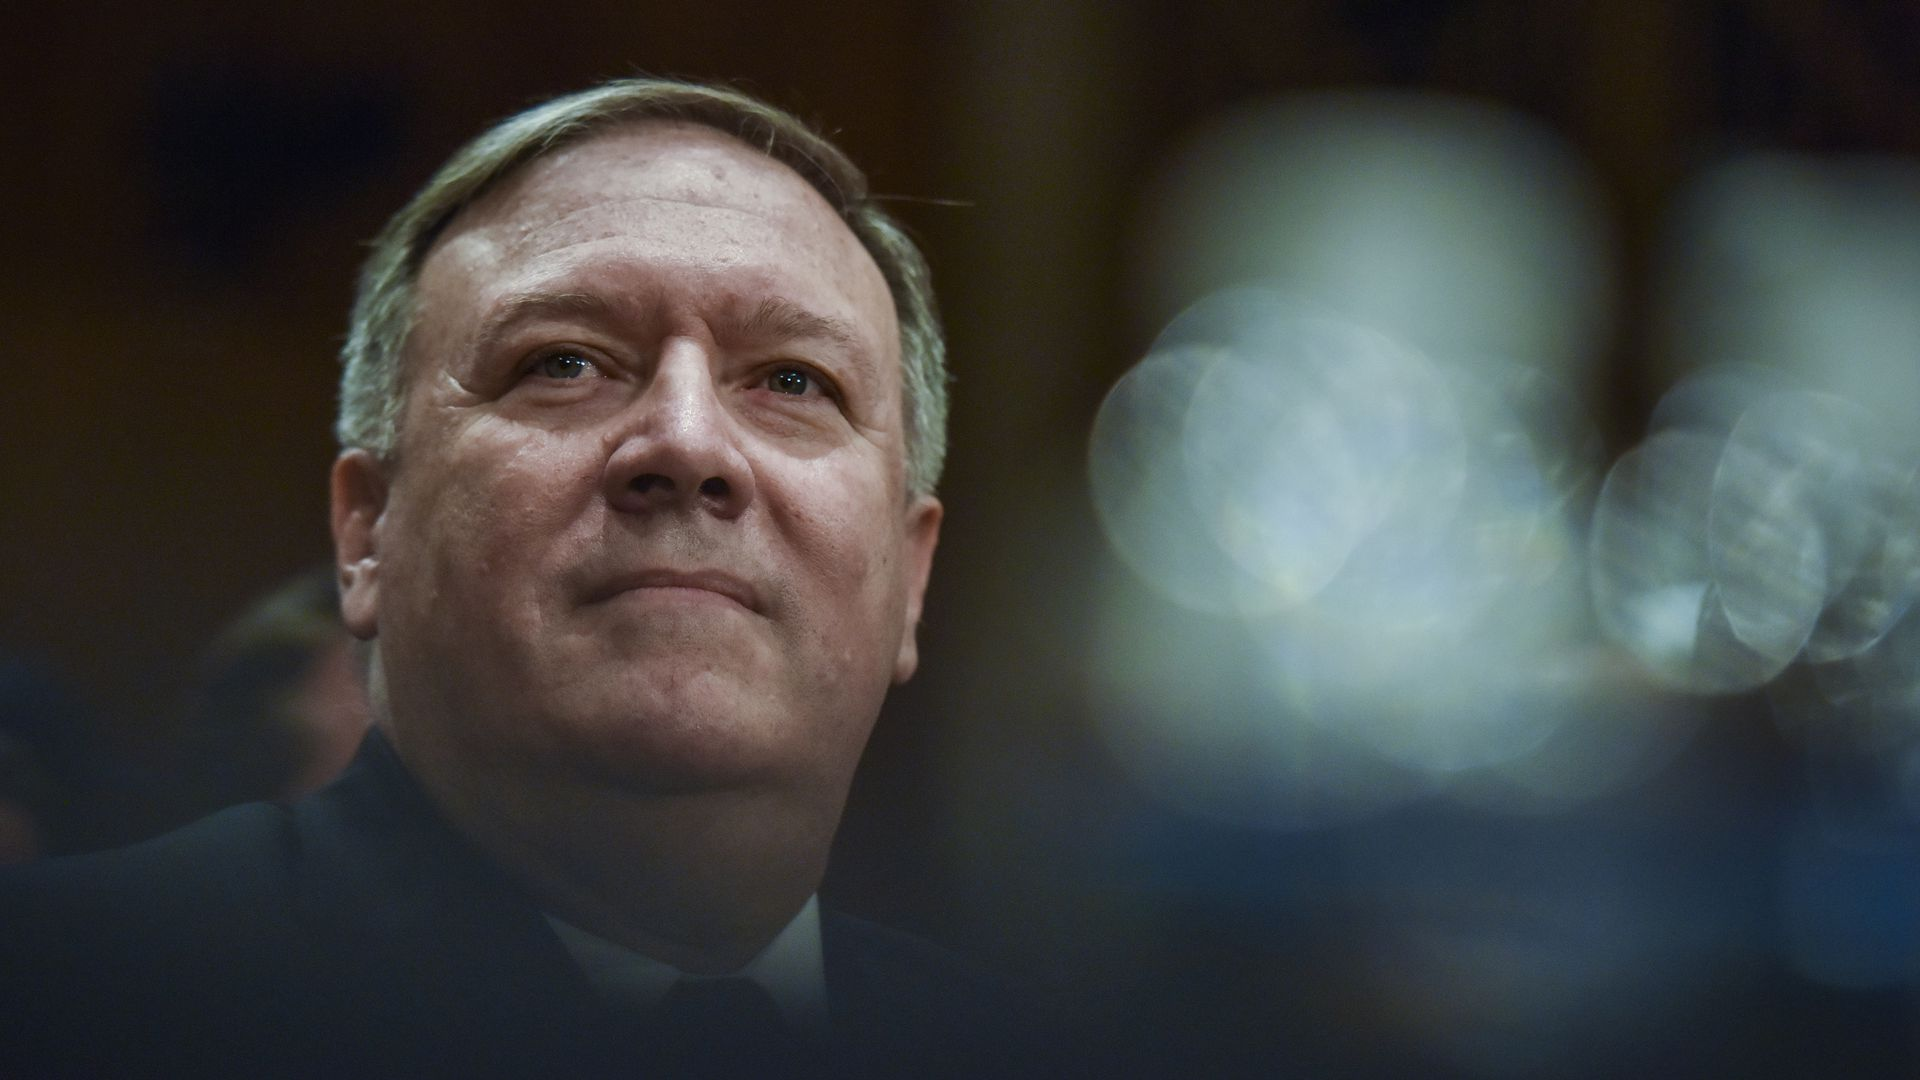 Mike Pompeo looks up hopefully during confirmation hearing